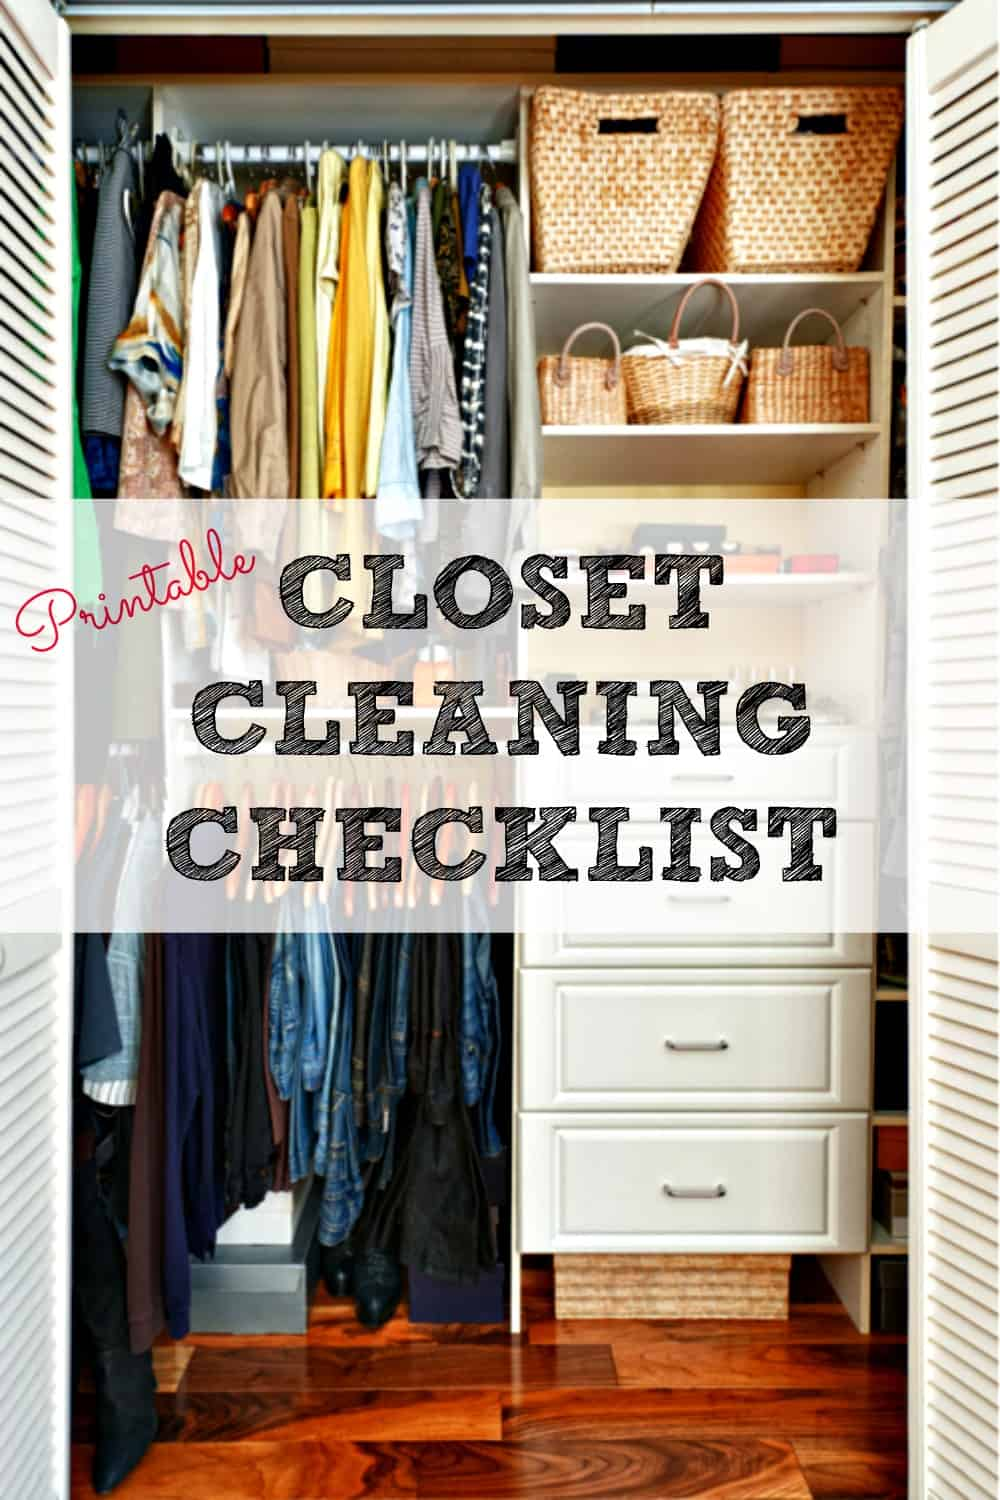 closet cleaning checklist